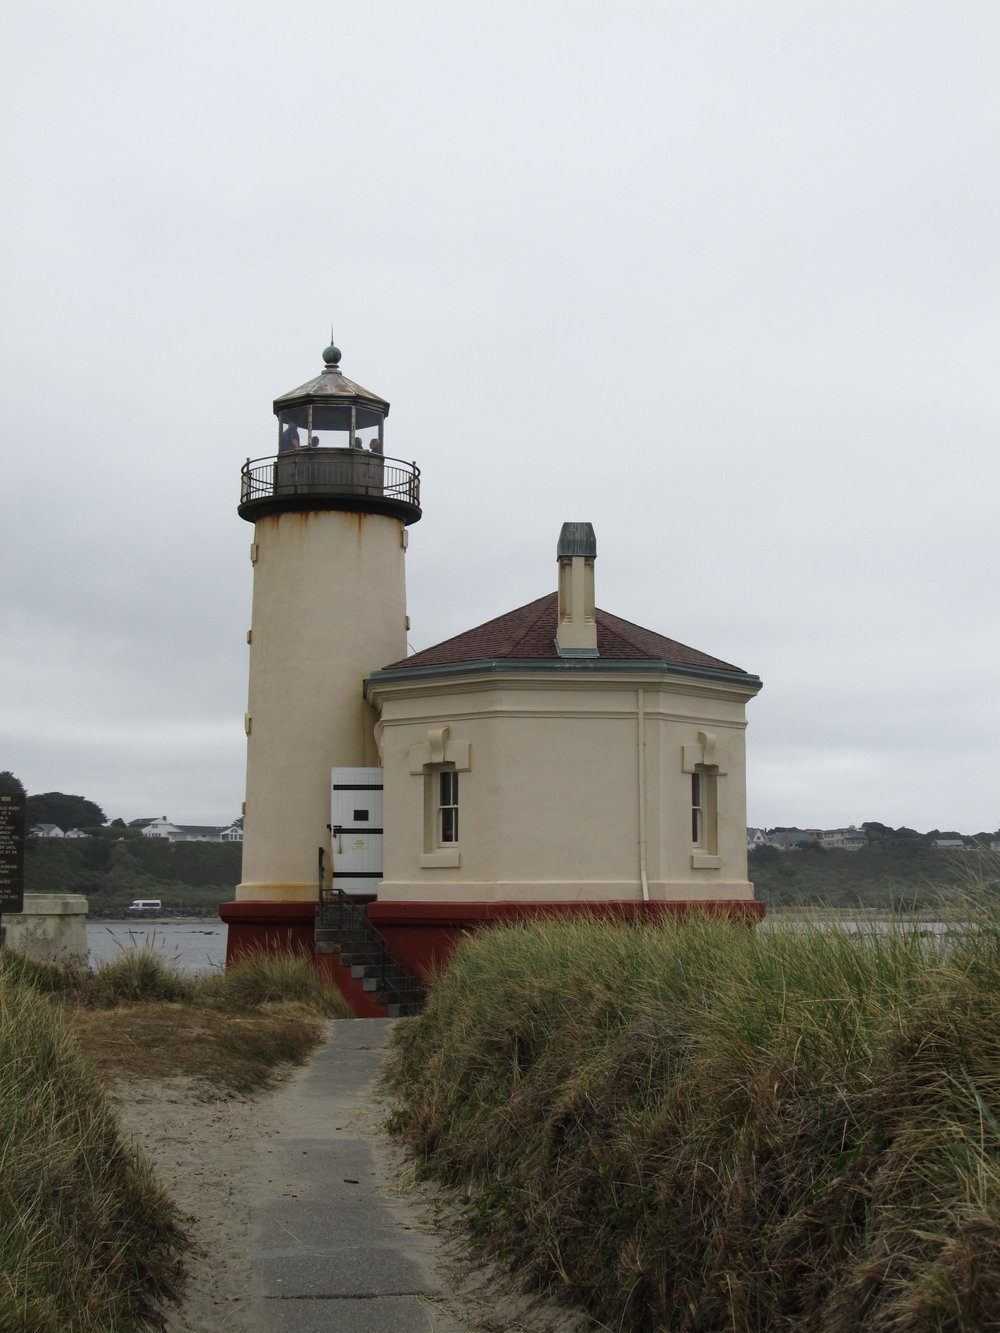 BULLARDS BEACH - Bandon Oregon - What to do in Southern  Oregon - Things to do